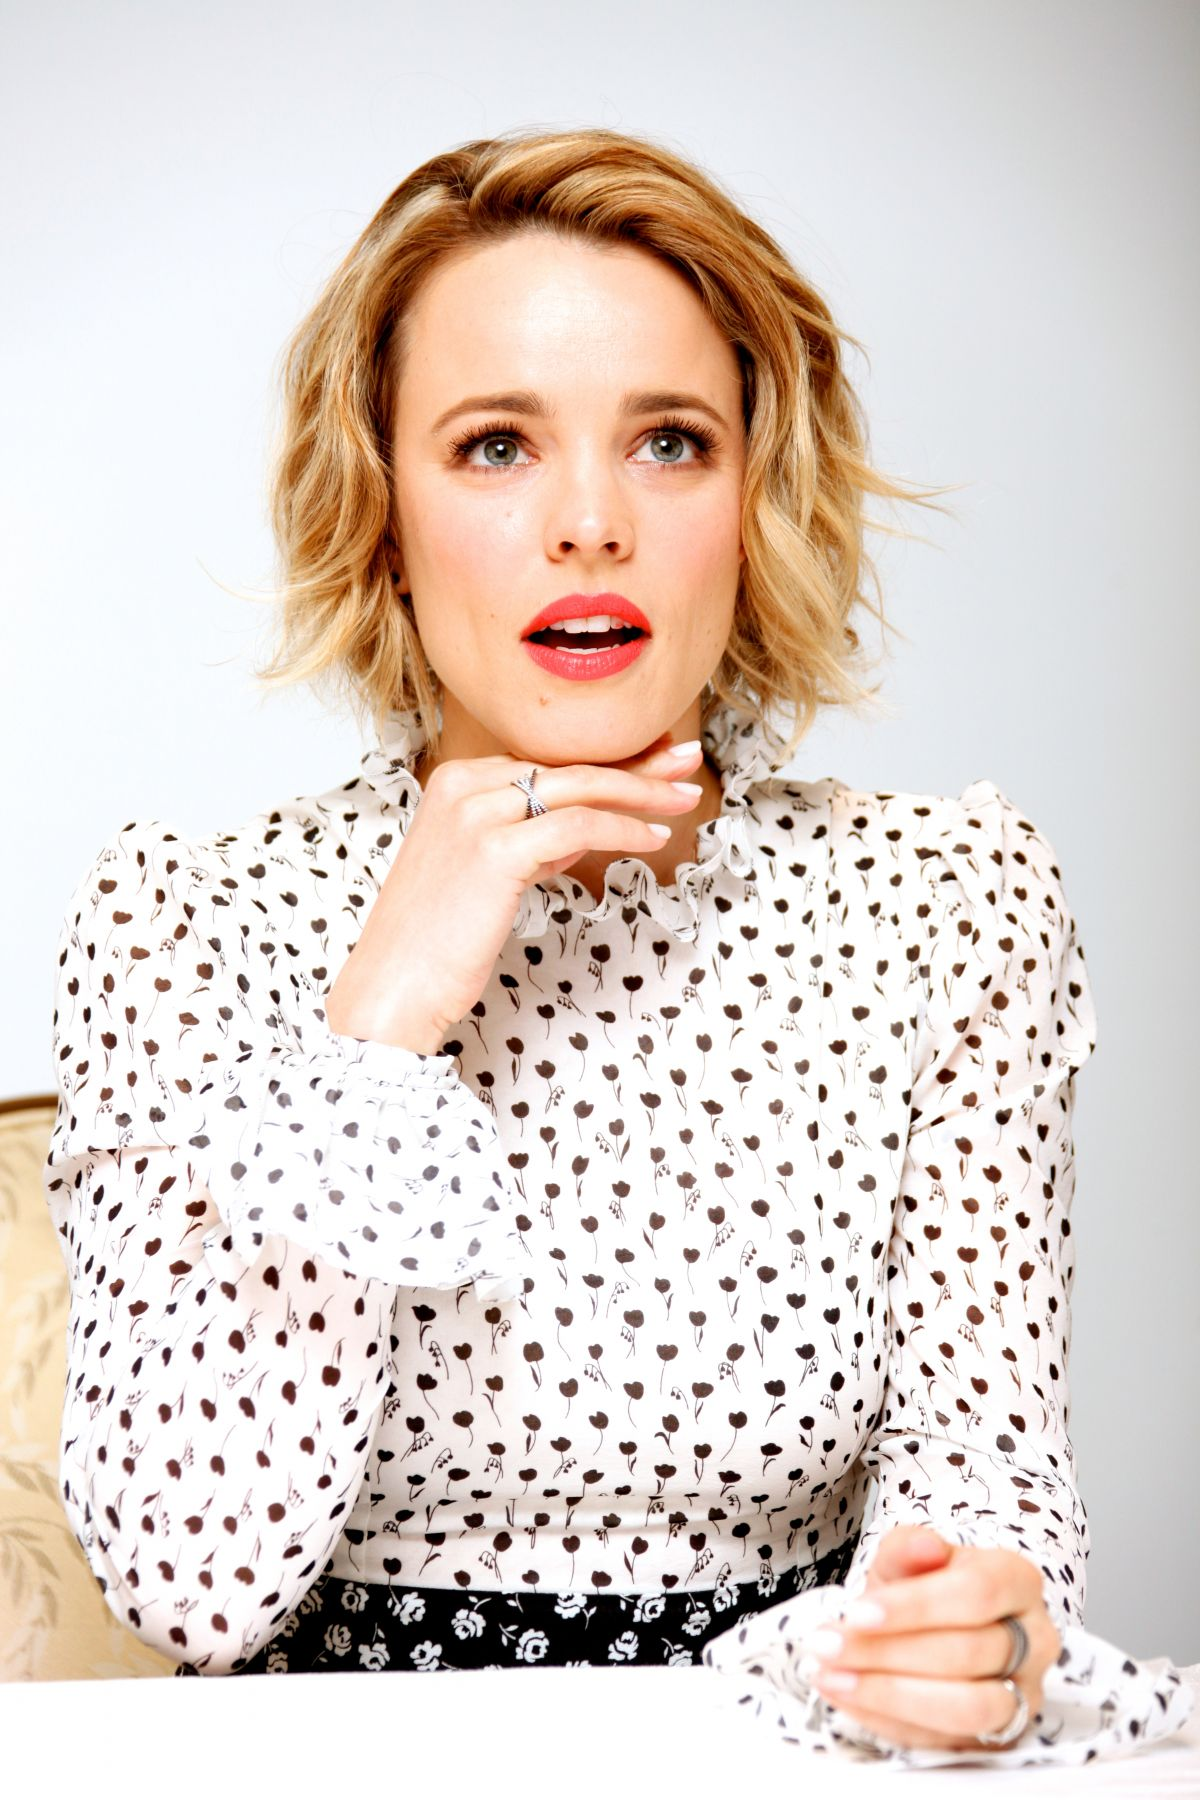 RACHEL MCADAMS at True Detective Press Conference in ... Rachel Mcadams